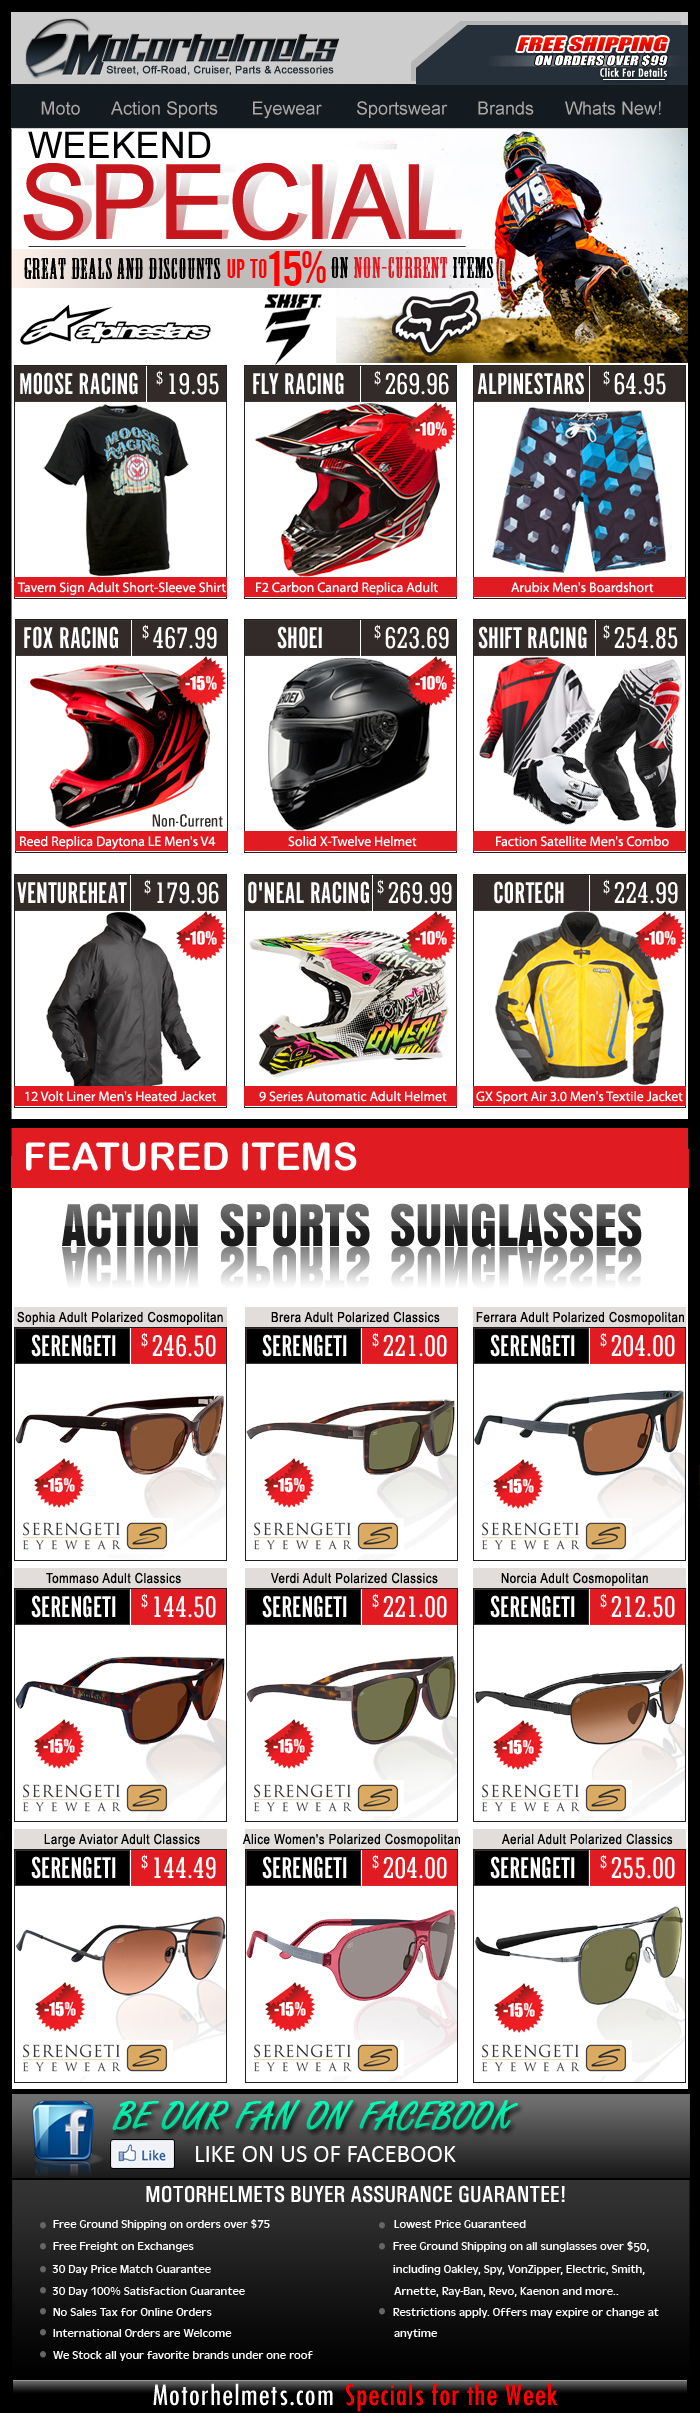 Up to 15% Off on Closeout Gear & Apparel from FOX, Fly, Shoei and more!